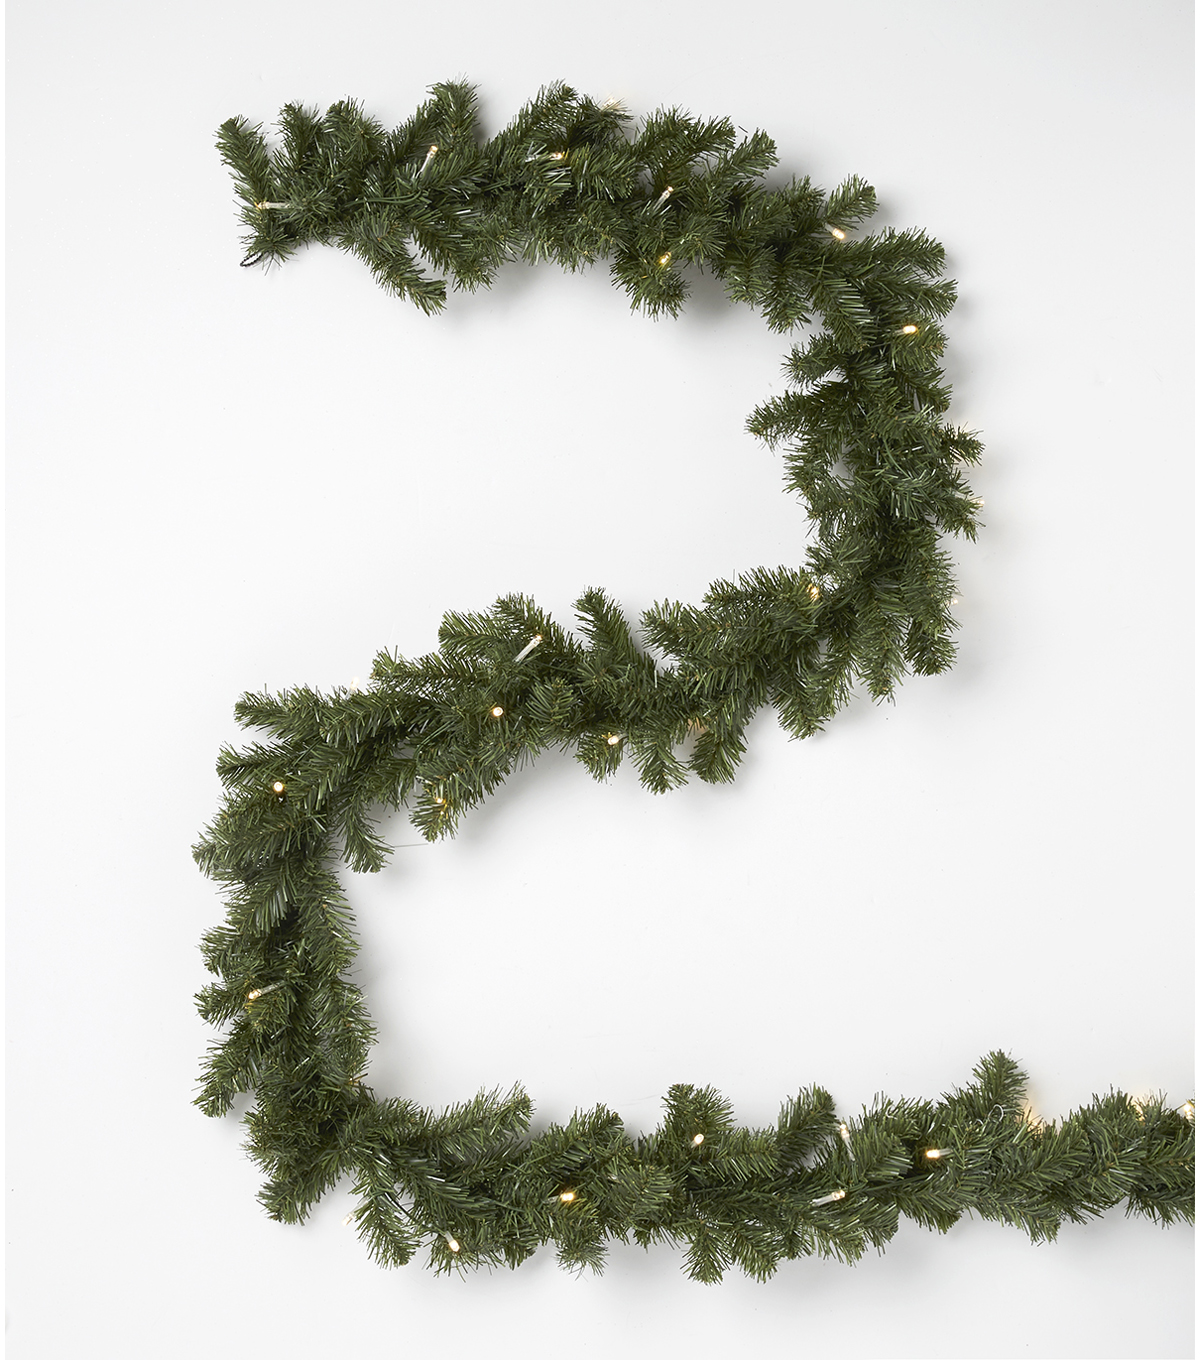 Blooming Holiday Christmas 9\u0027 Prelit PVC Canadian Pine Garland